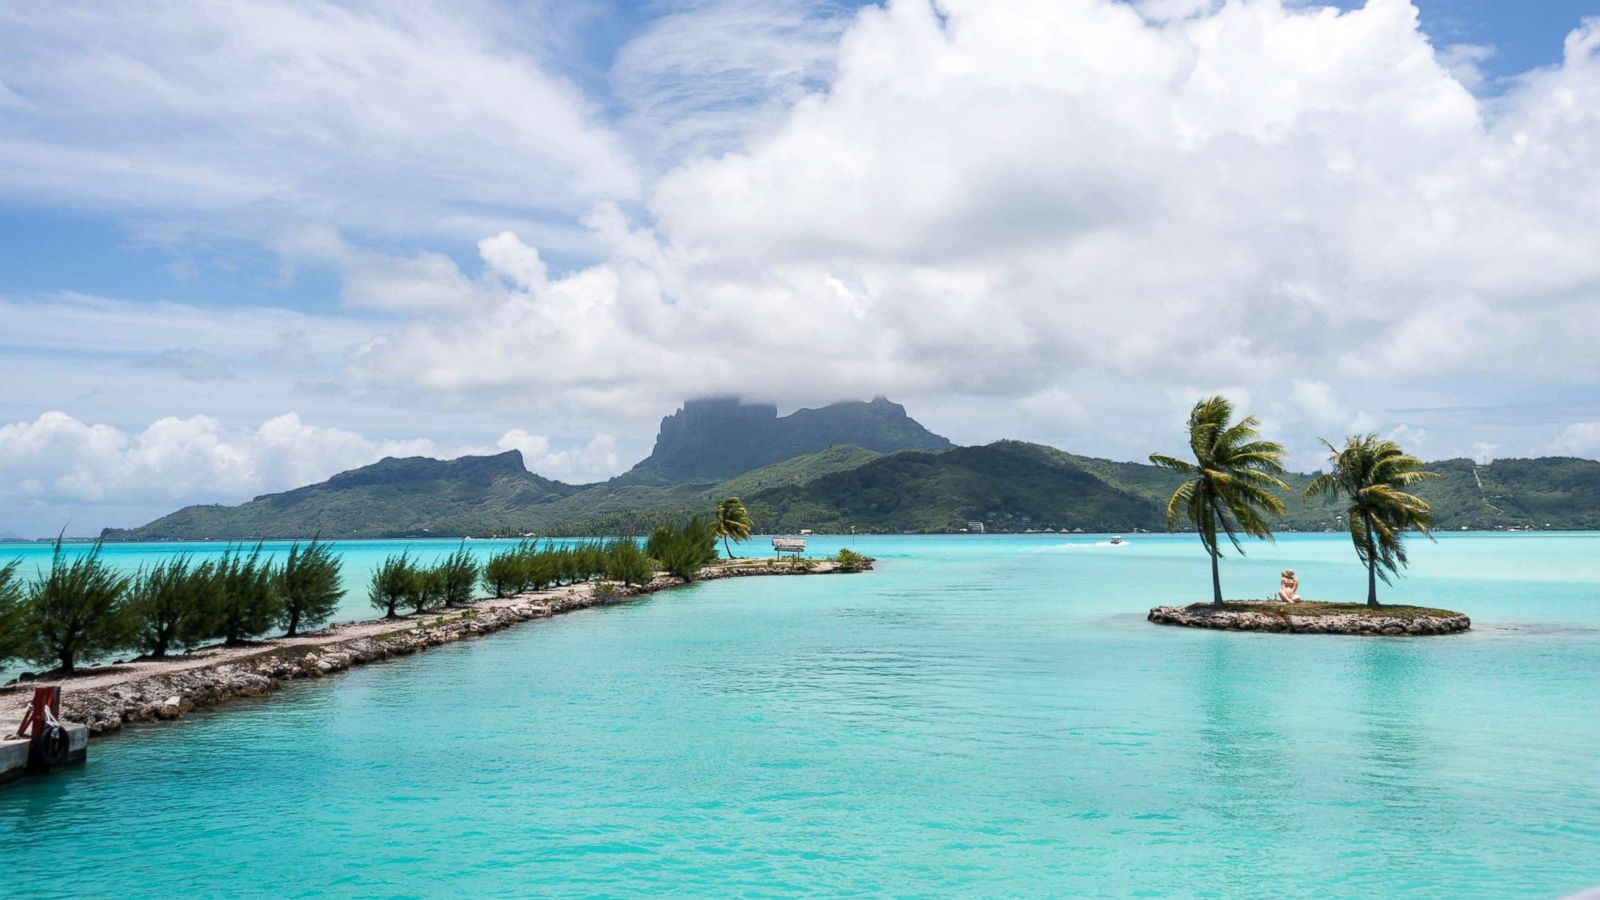 How to vacation in Bora Bora on the cheap - ABC News